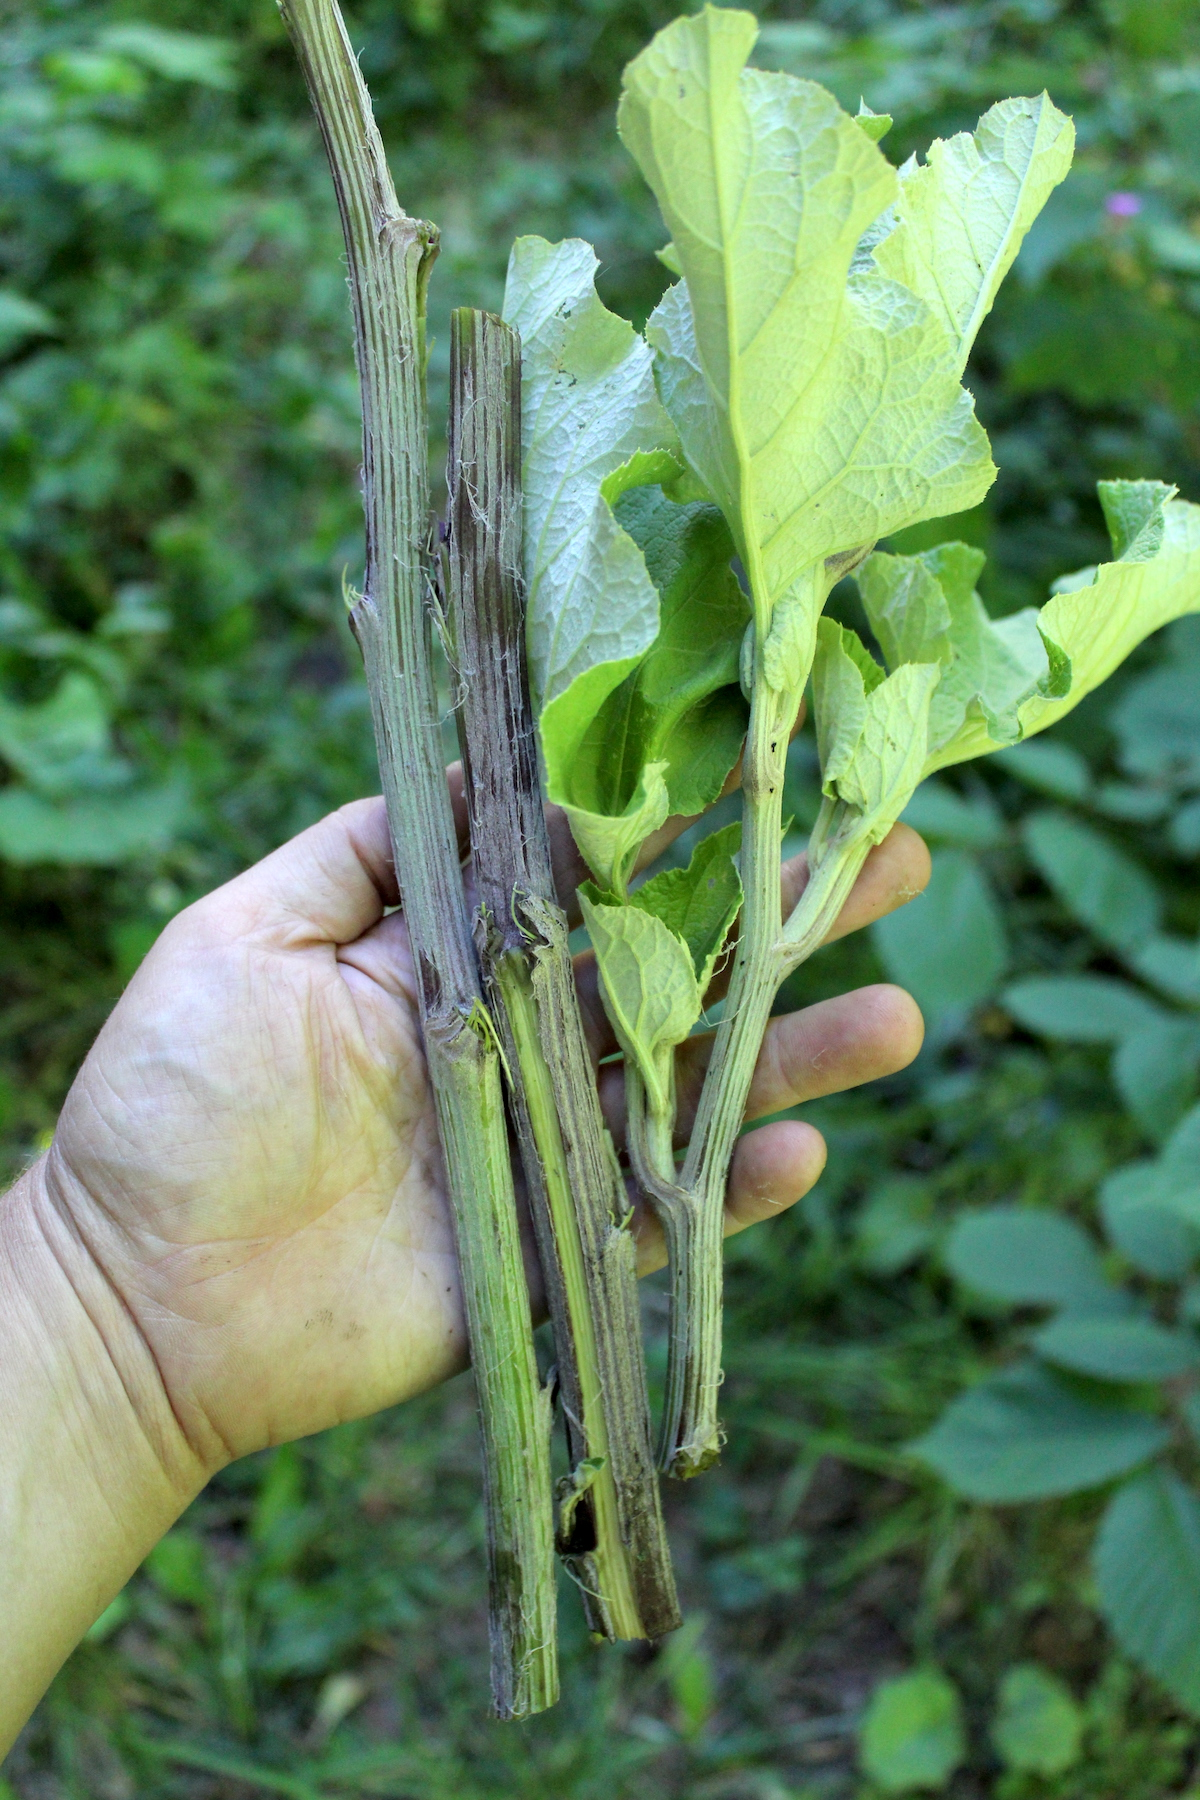 Burdock Stems